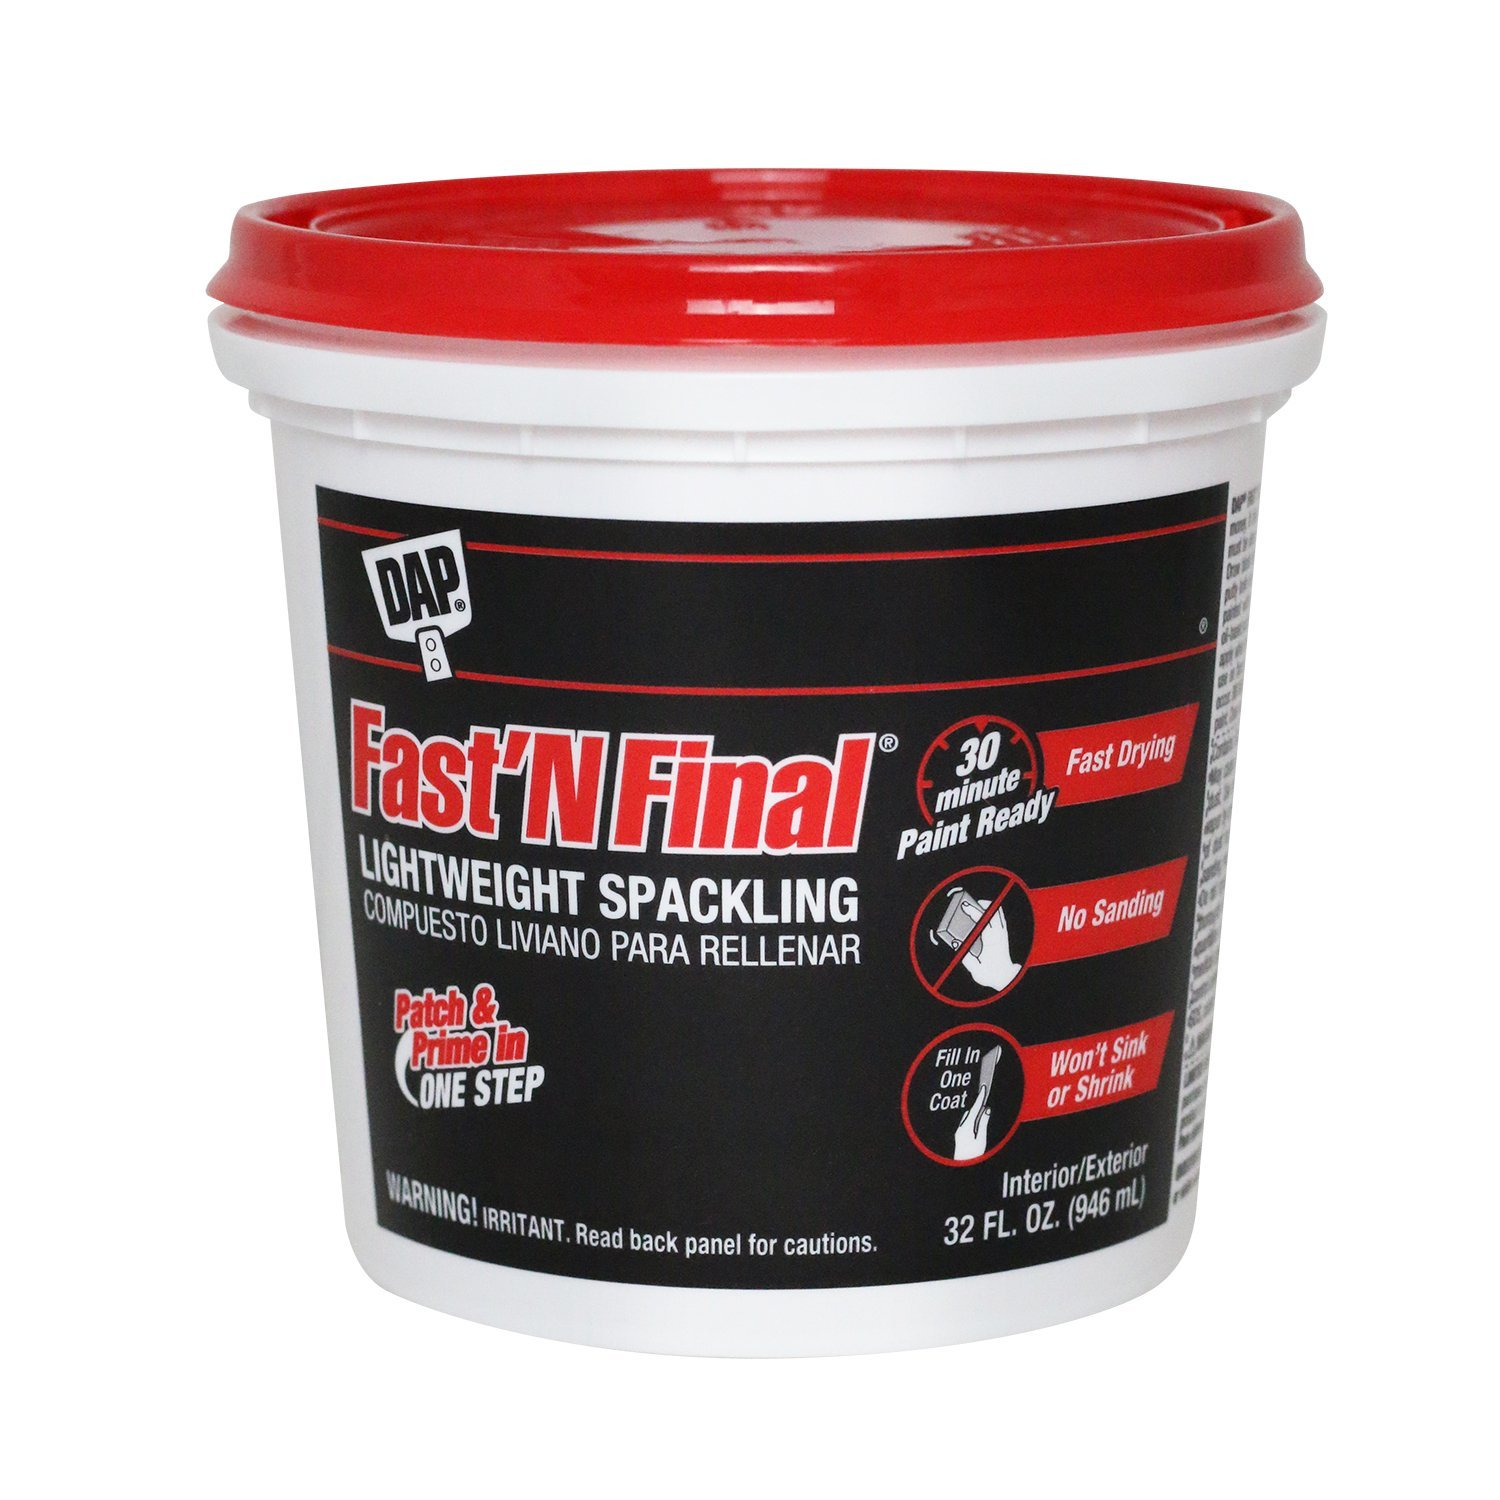 Dap 12140 Fast N Final Interior Exterior Spackle, 12 Pint